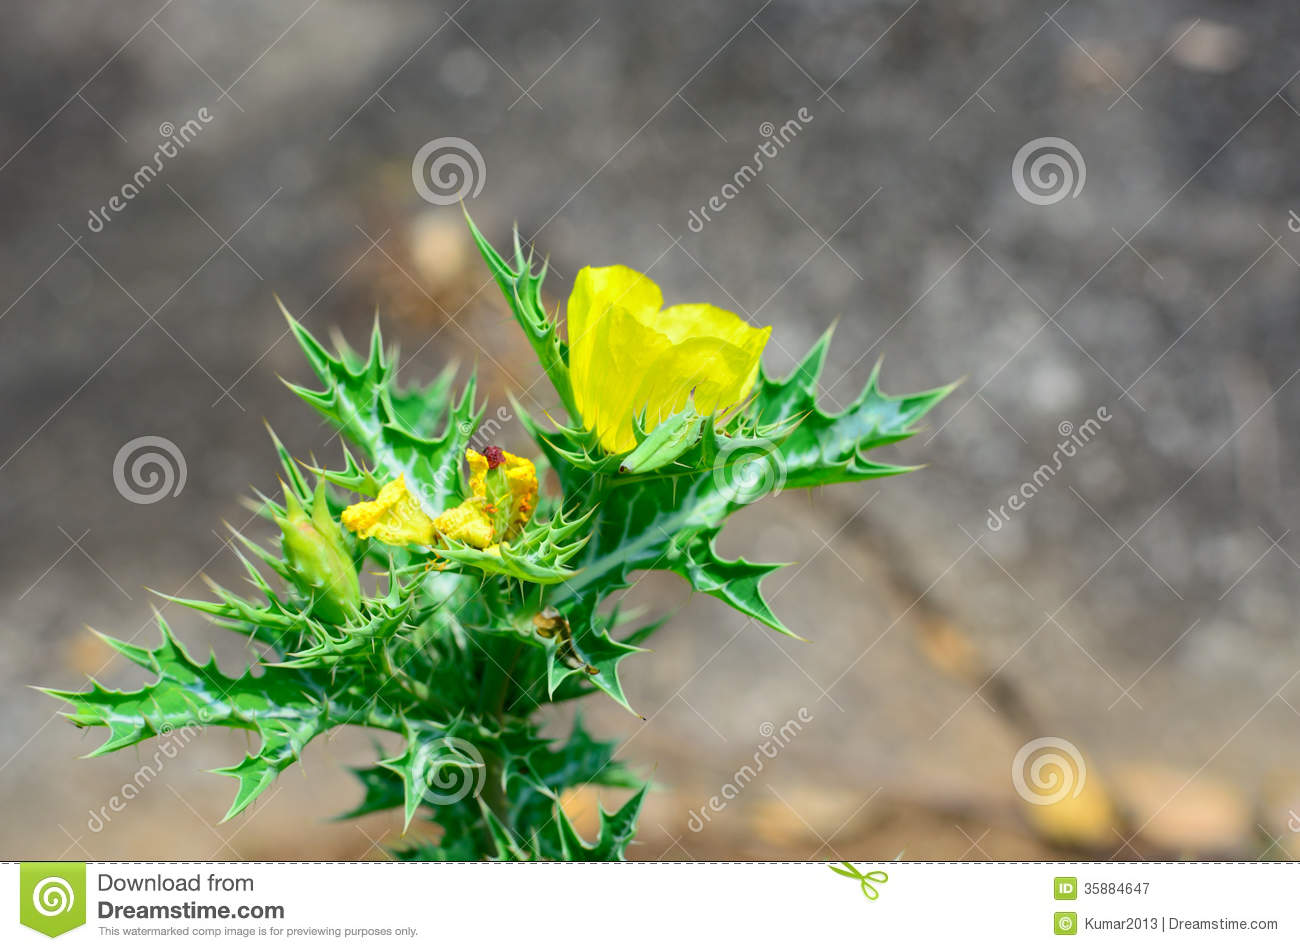 Argemone Mexicana Or Mexican Poppy Royalty Free Stock Photography.